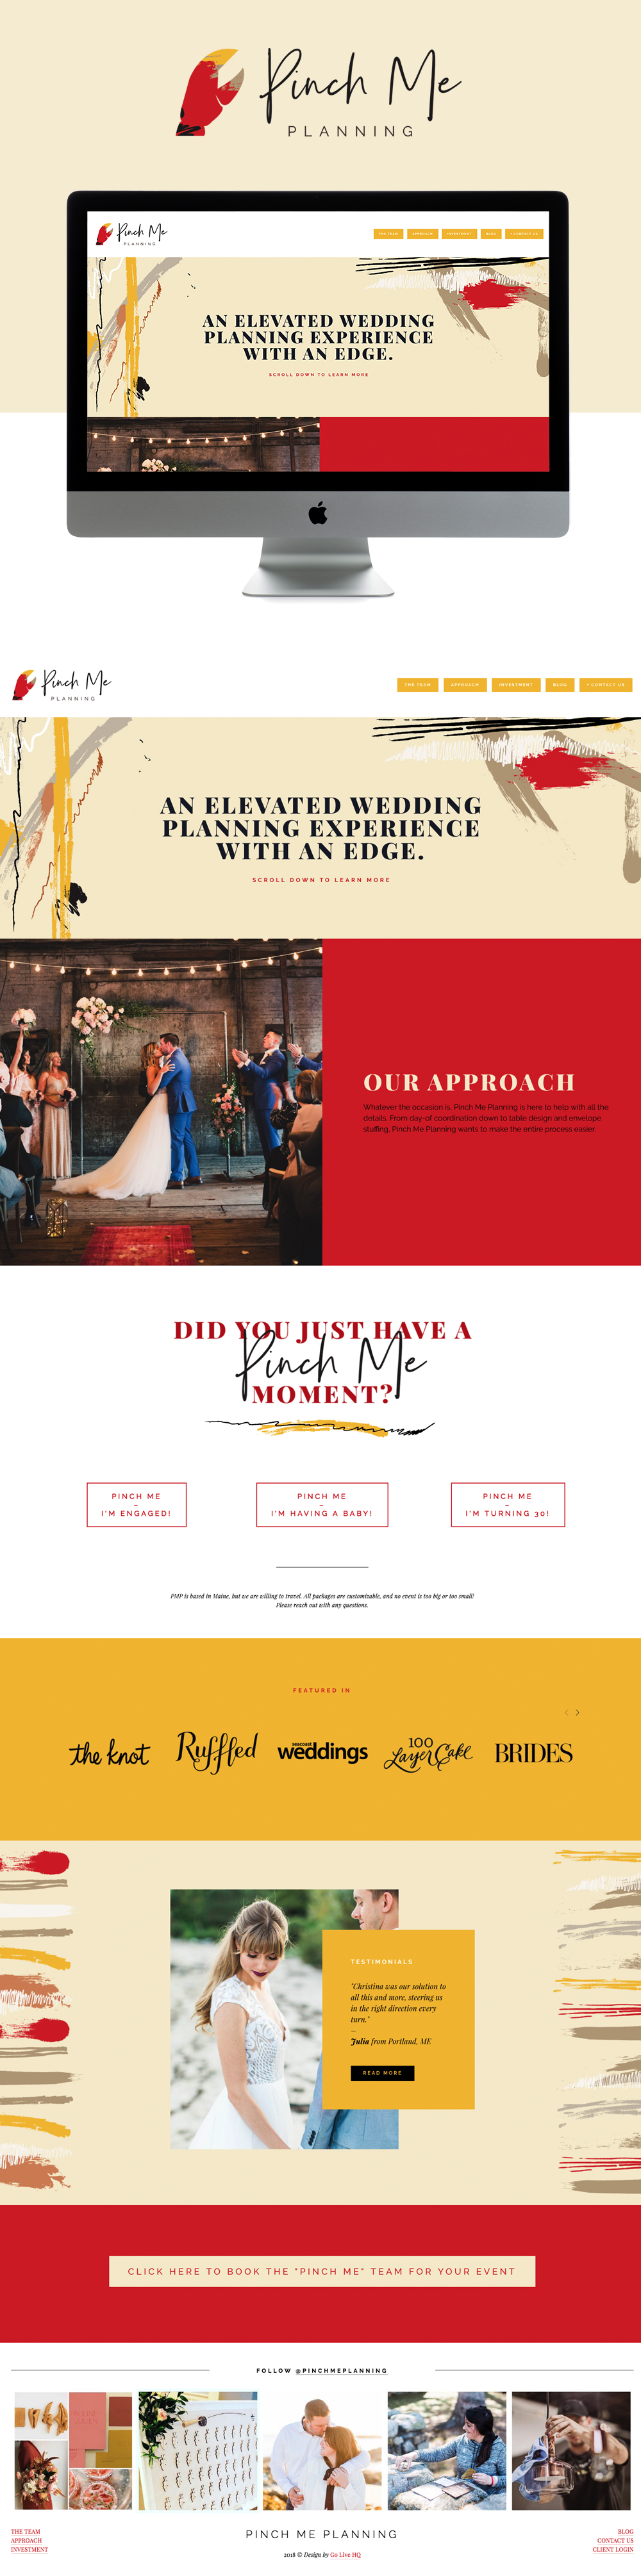 Modern, Edgy, Colorful Website Design for Wedding Planner | Design by Go Live HQ